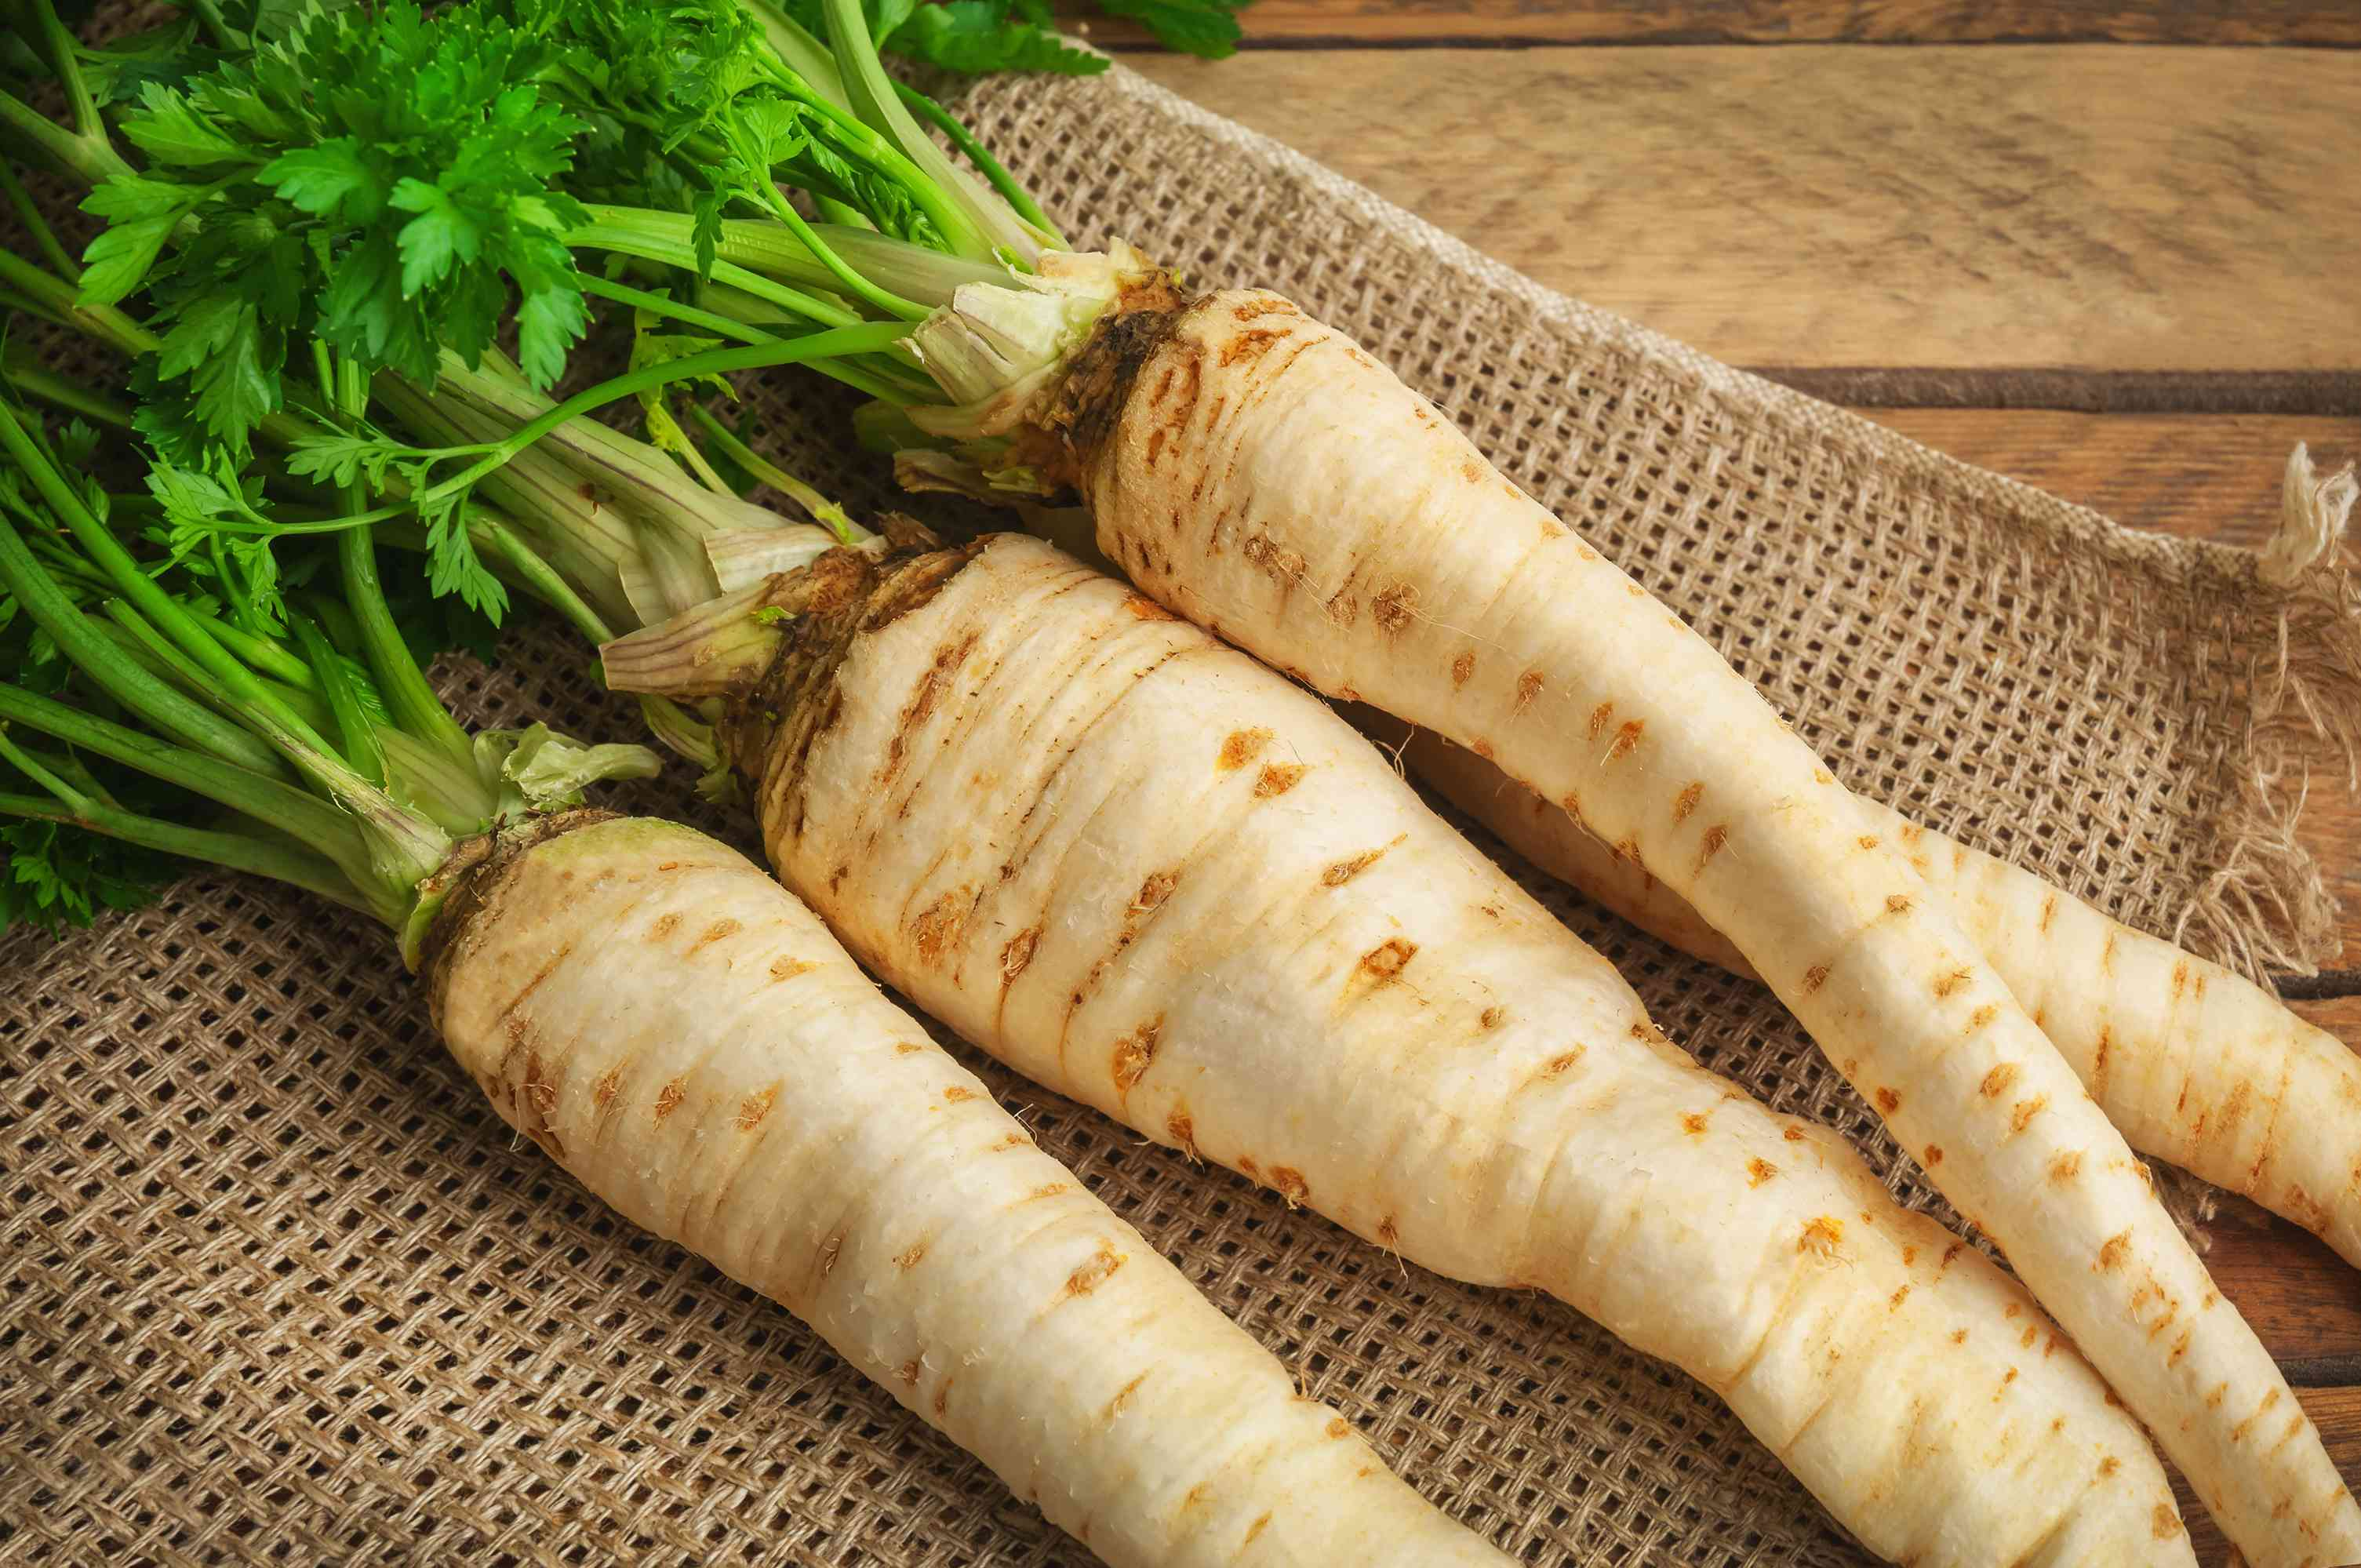 parsnips on a cloth